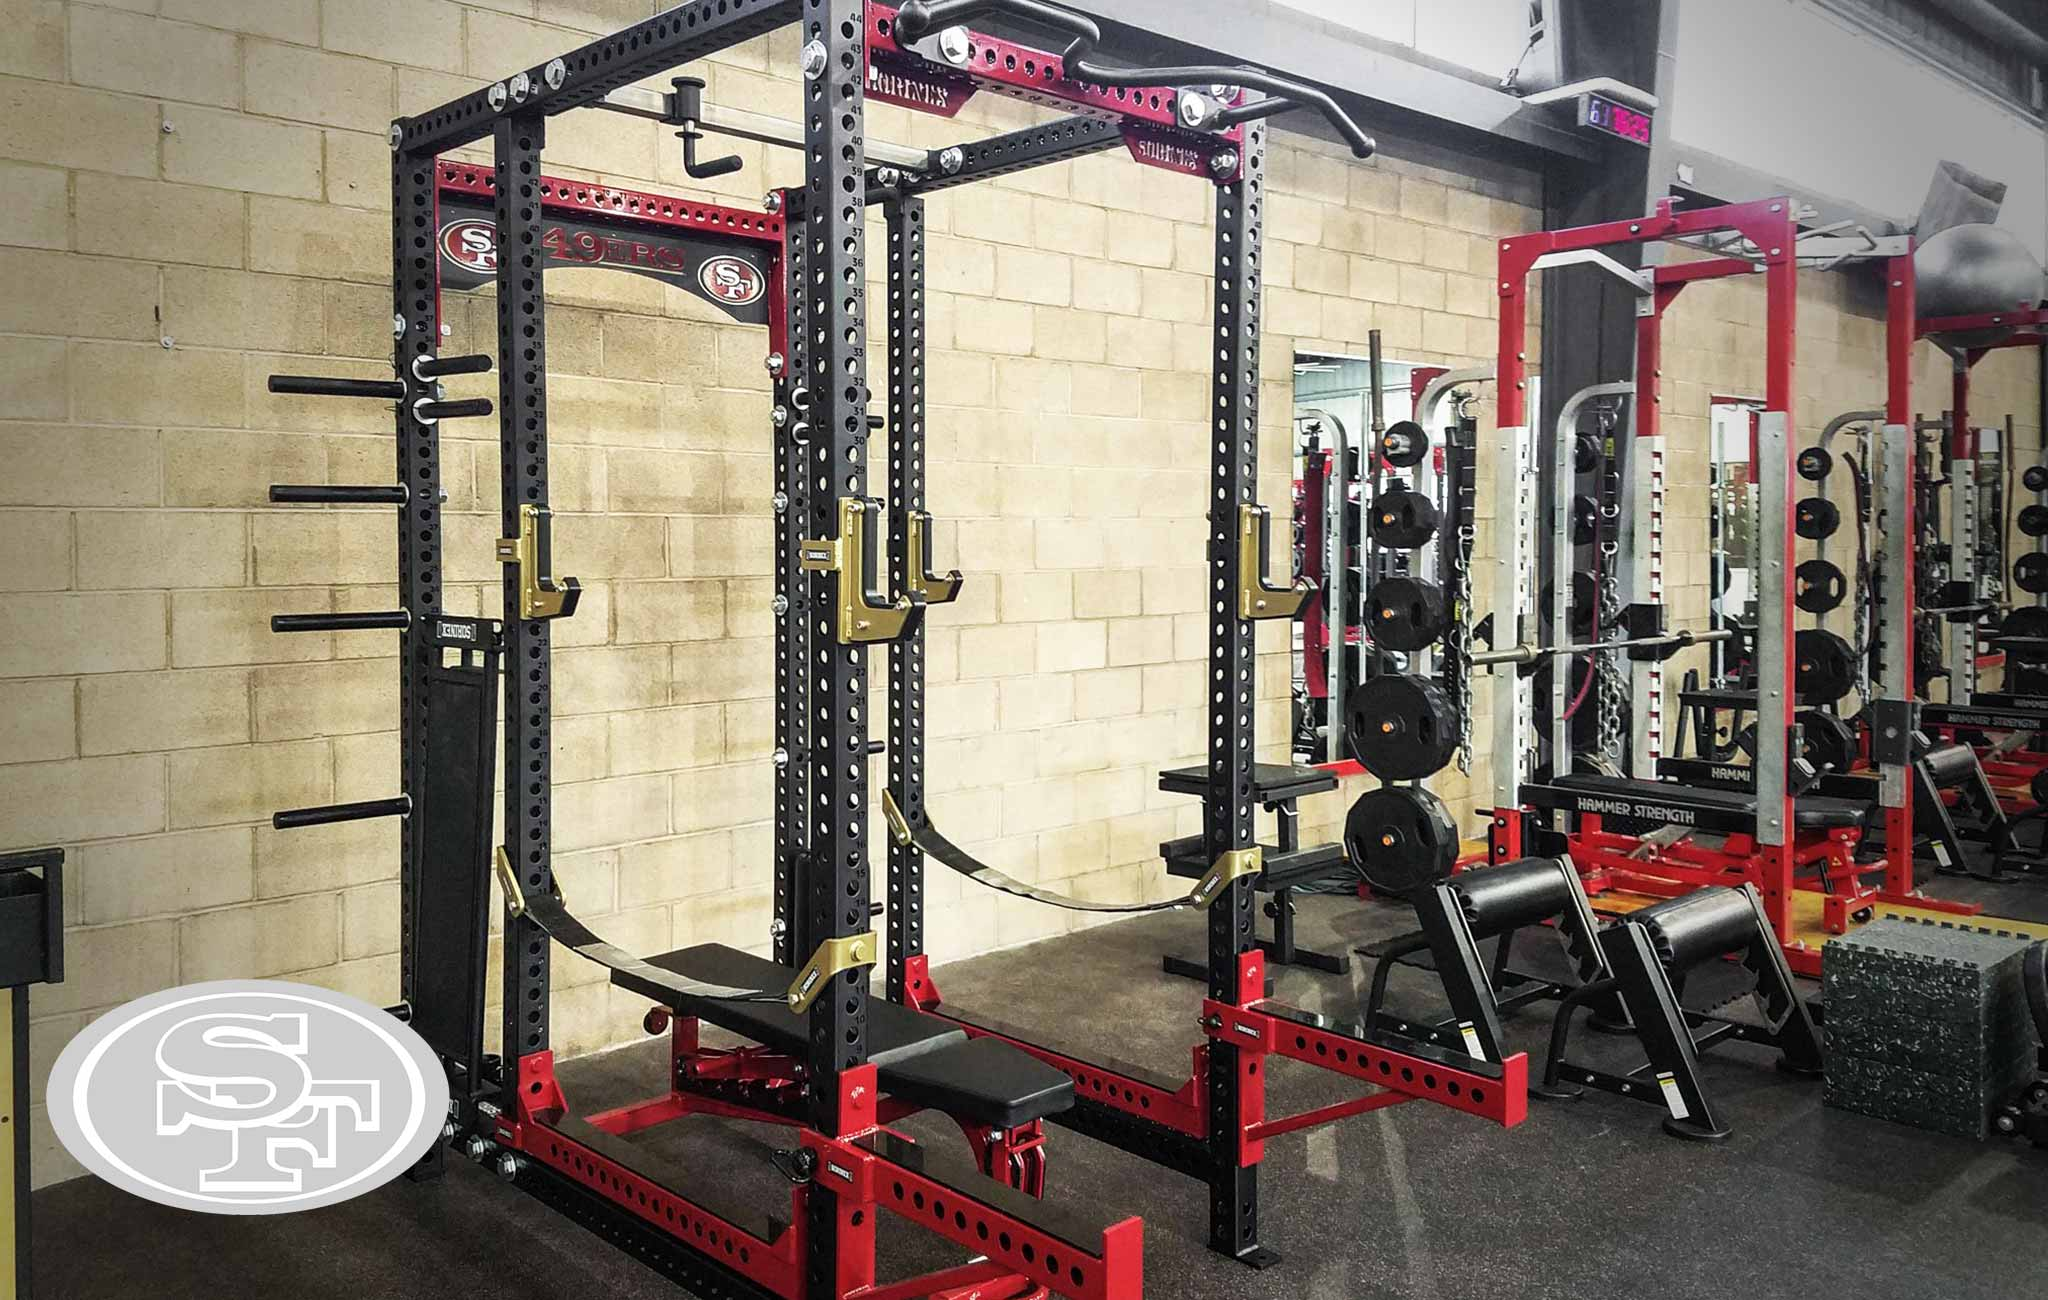 San Fransisco Sorinex strength and conditioning facility